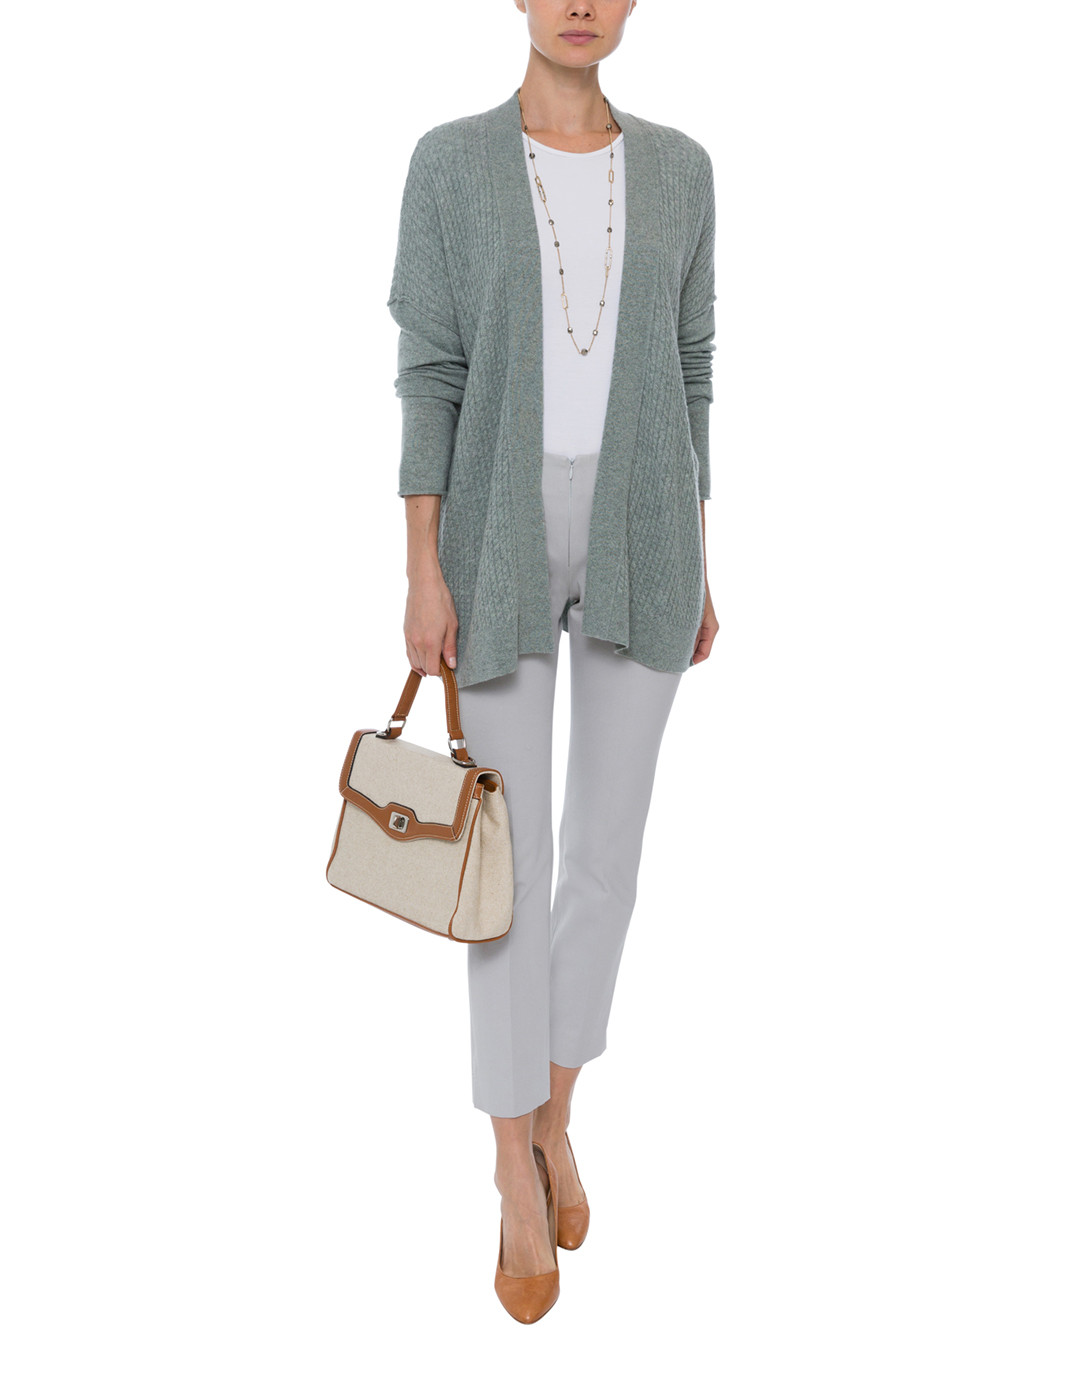 041f5e943cc Sage Green Micro Cable Knit Cashmere Cardigan